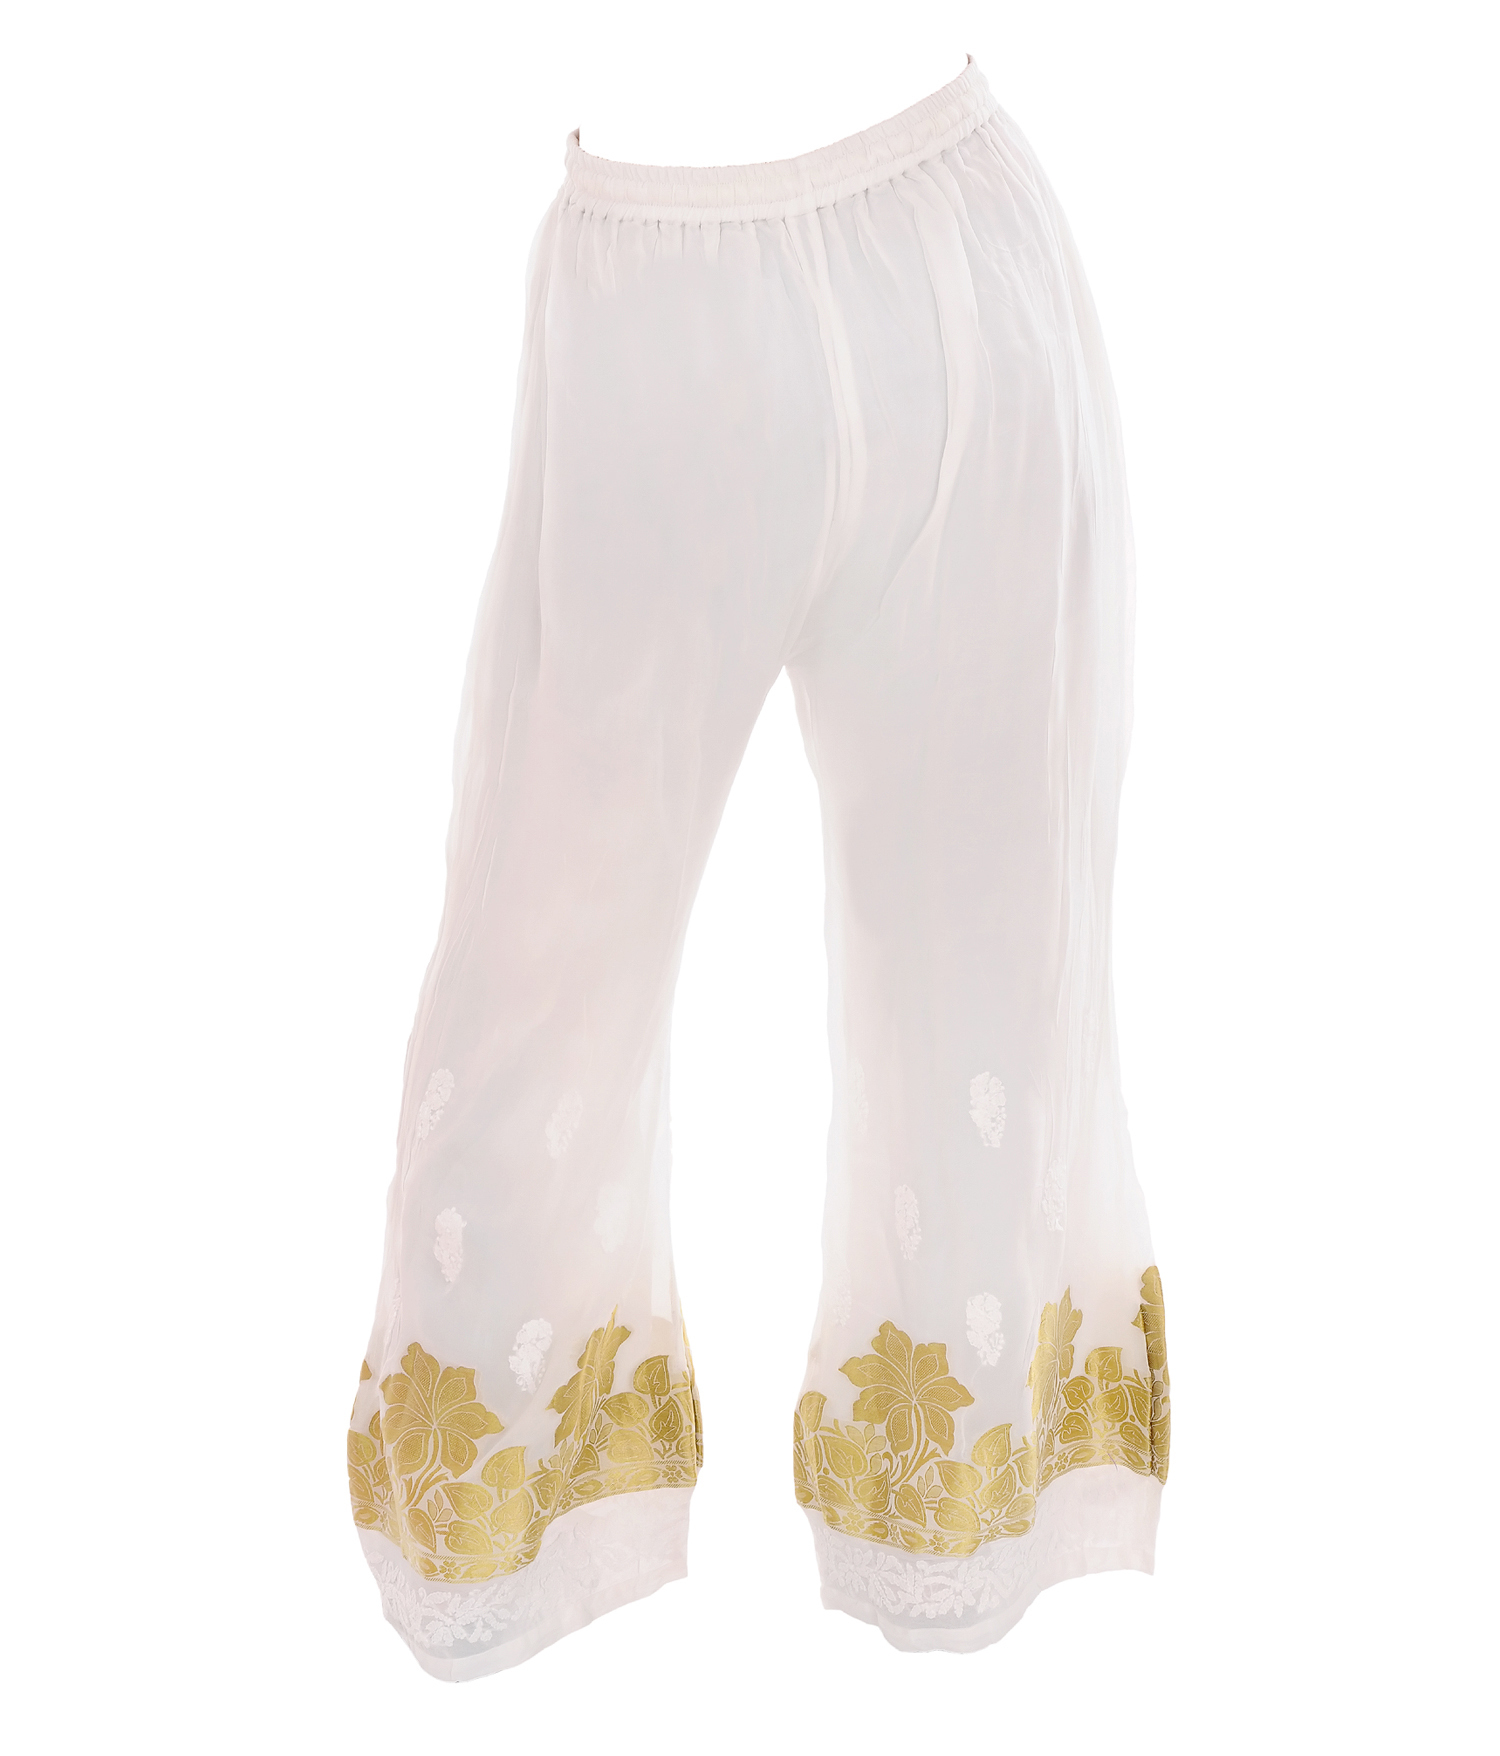 Ethnava Viscose Free Size Regular Fit White Plazzo With Golden Floral Ptint